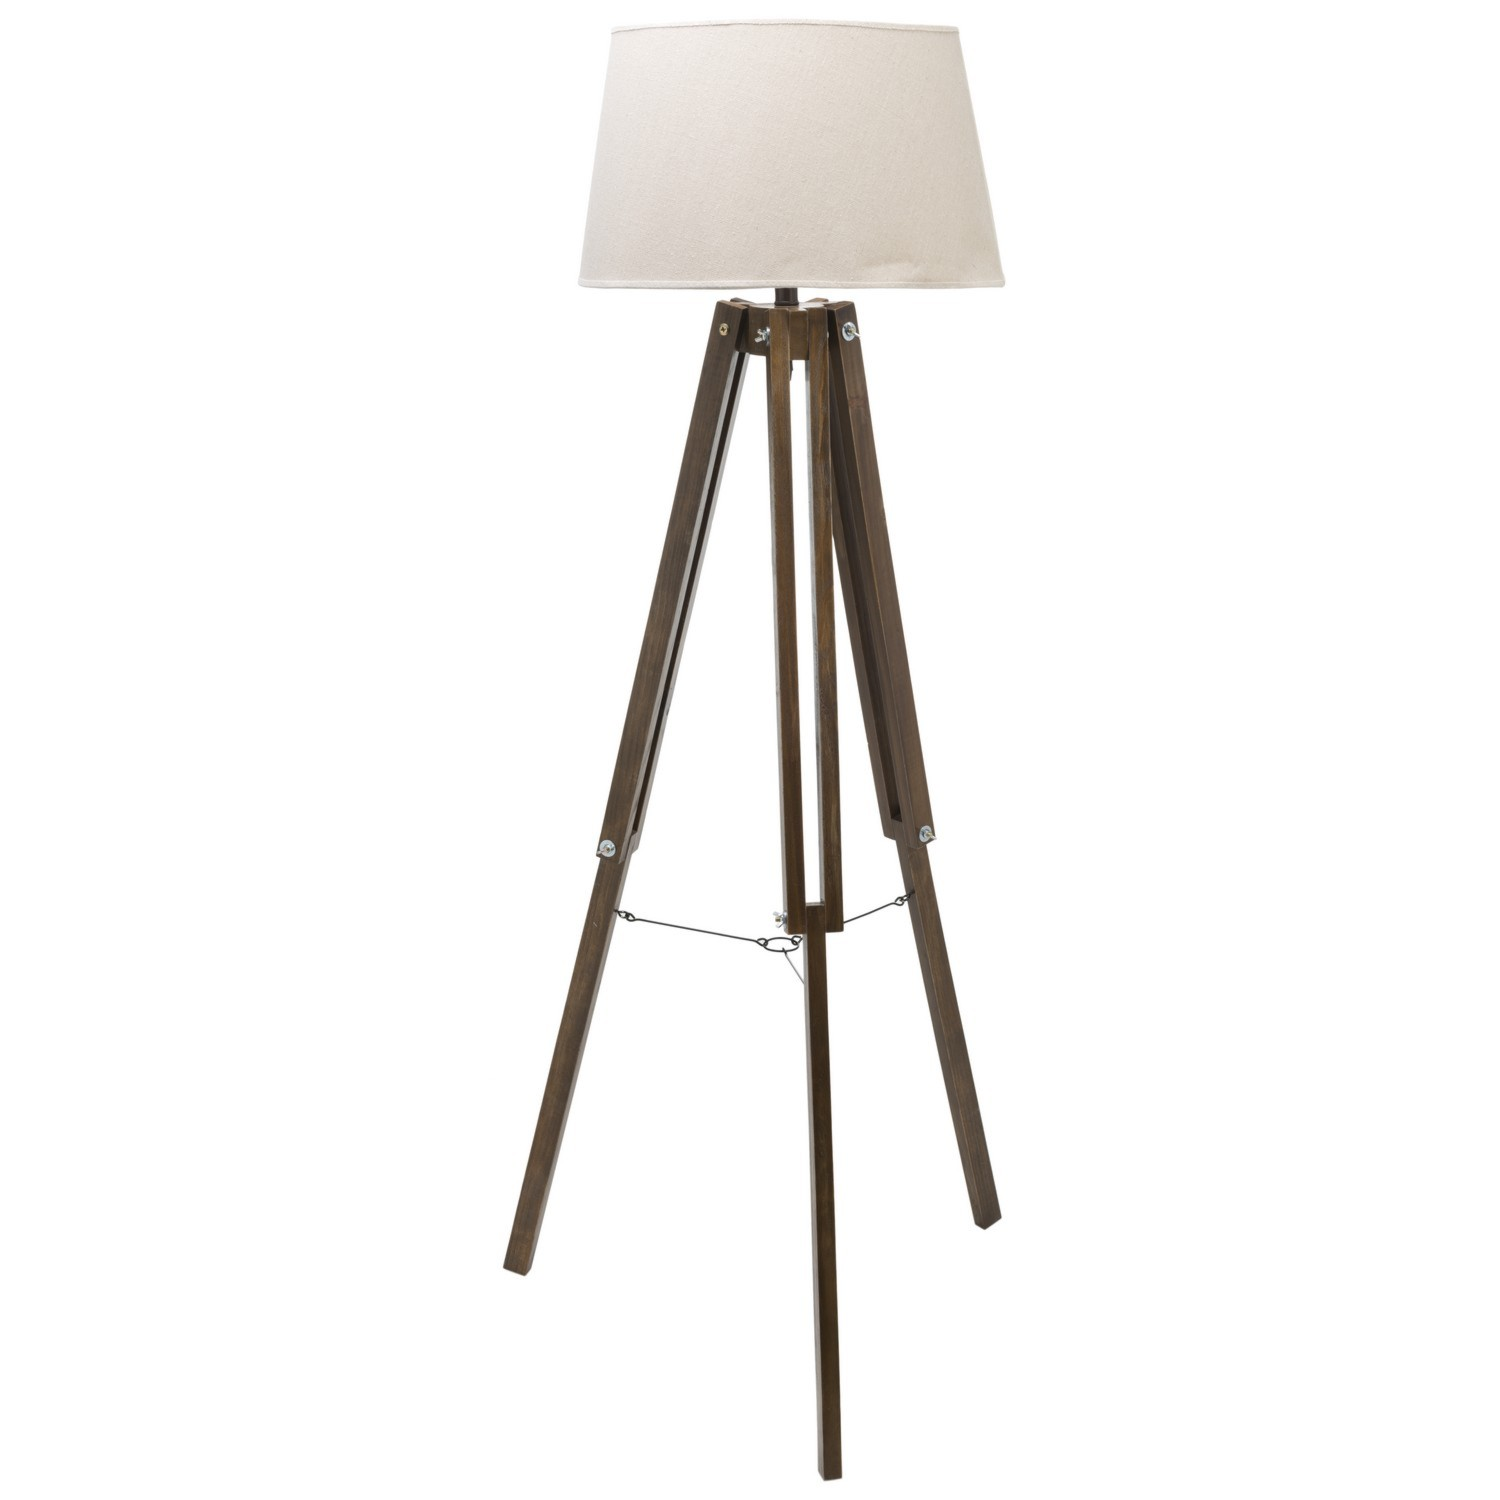 Wood Base Floor Lamp | Santa and Cole Tripode Floor Lamp | Tripod Lamp